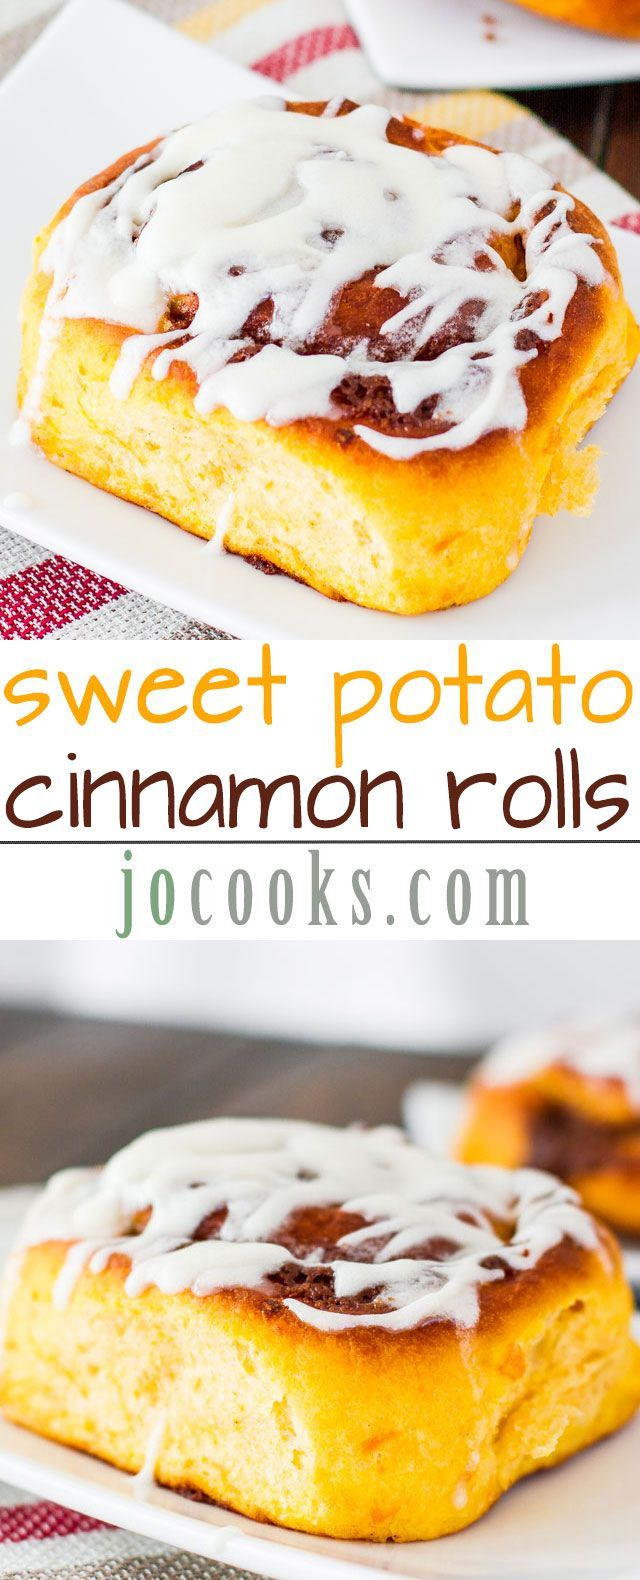 Sweet Potato Cinnamon Rolls – the most tender, soft and delicious cinnamon rolls, a perfect use of sweet potatoes.